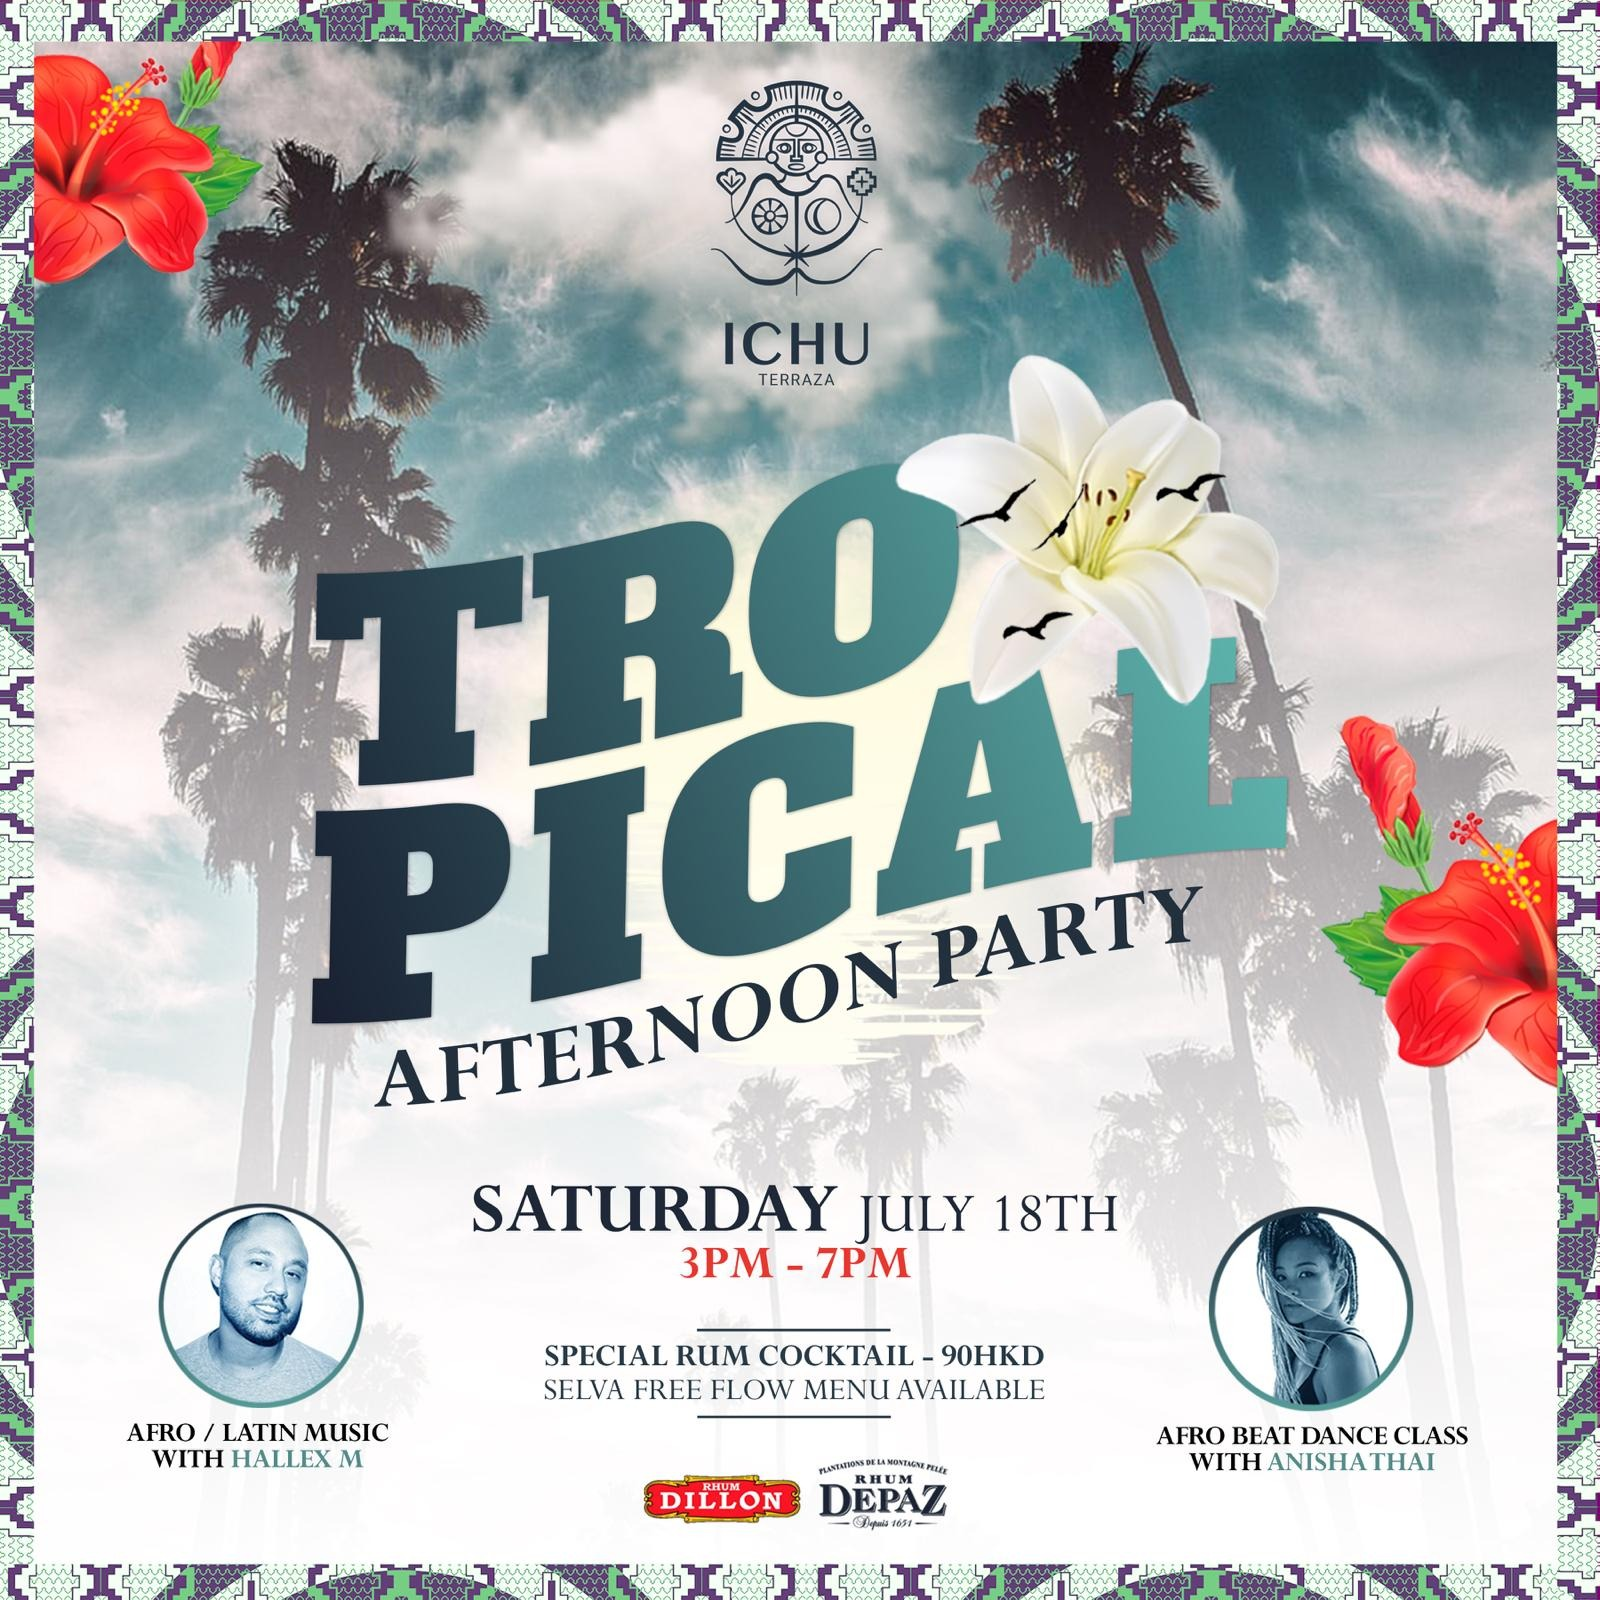 ICHU Restaurant & Bar | Events | TROPICAL AFTERNOON PARTY